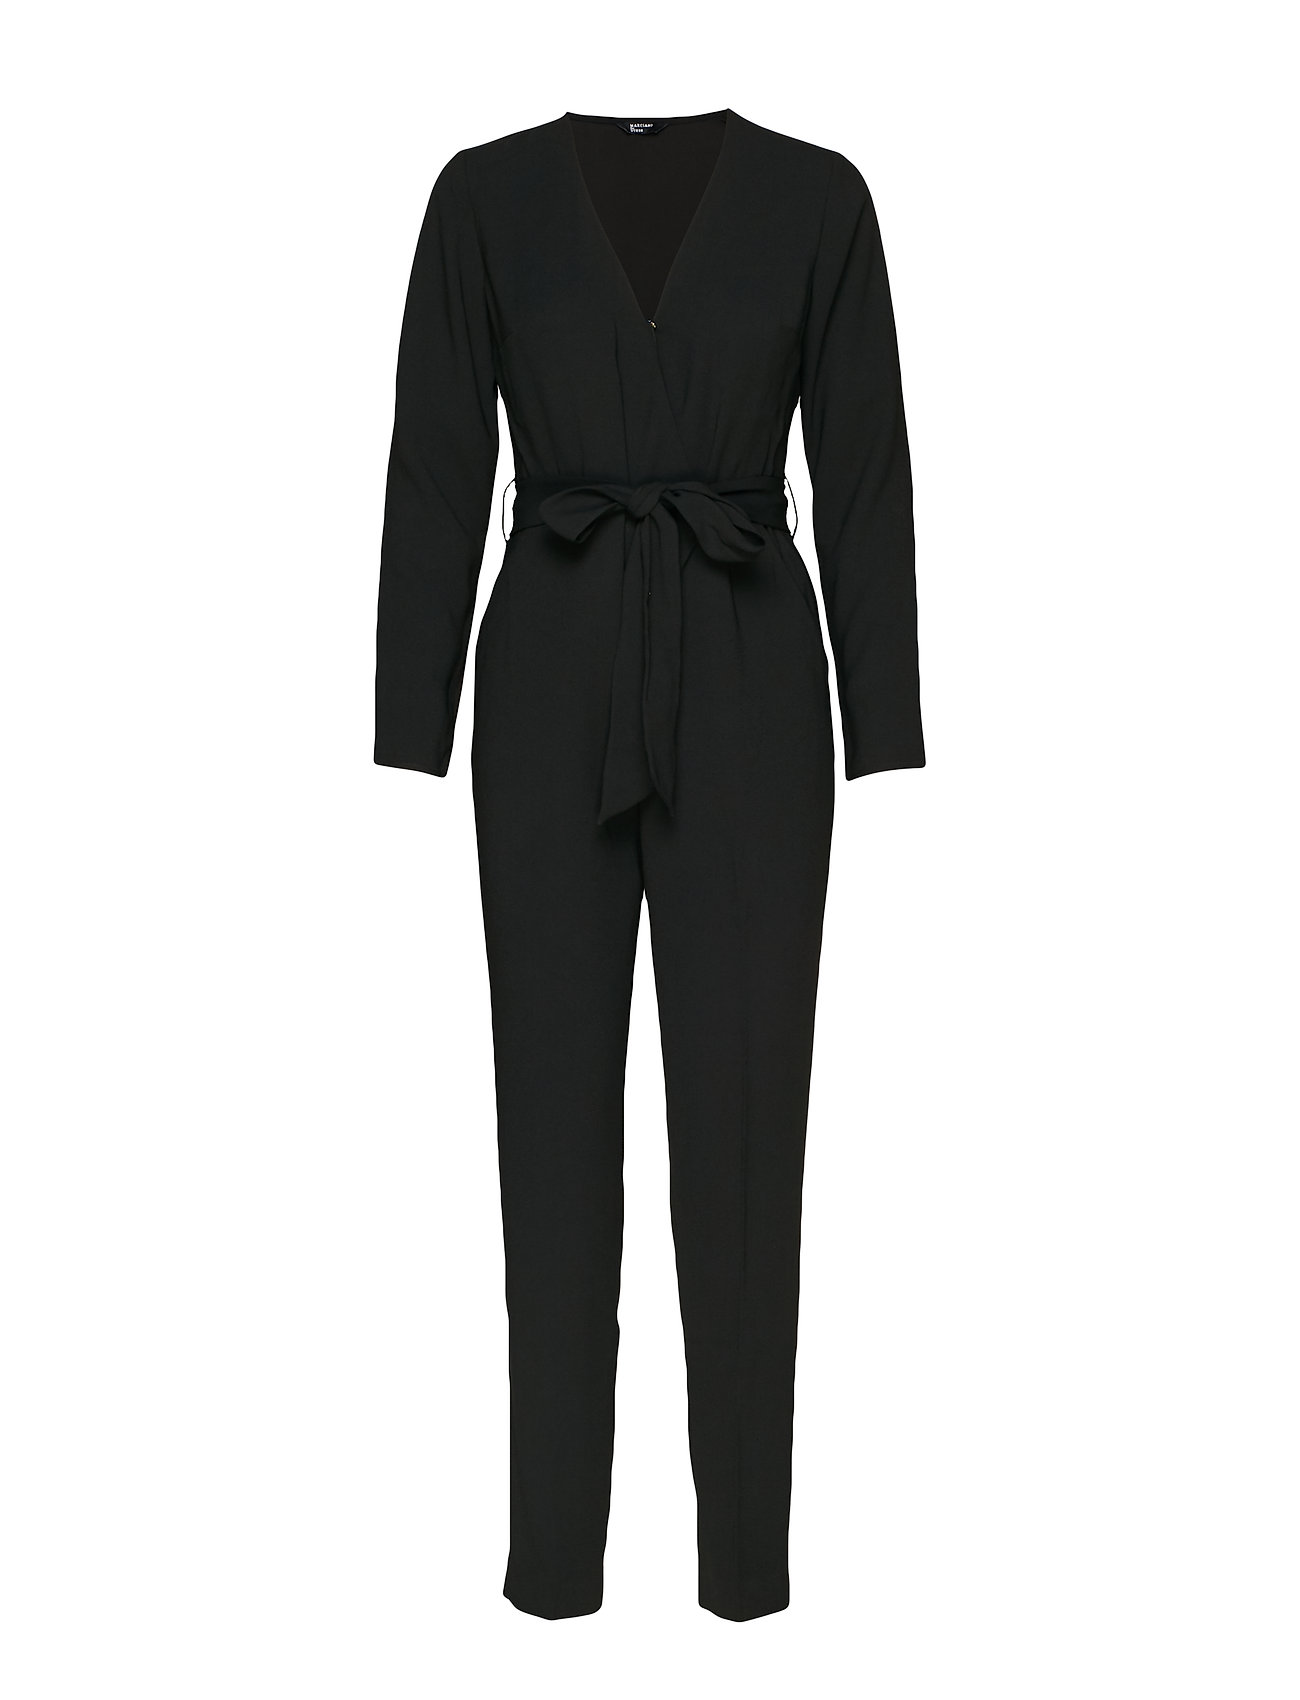 Marciano by GUESS WONDERER JUMPSUIT - JET BLACK A996